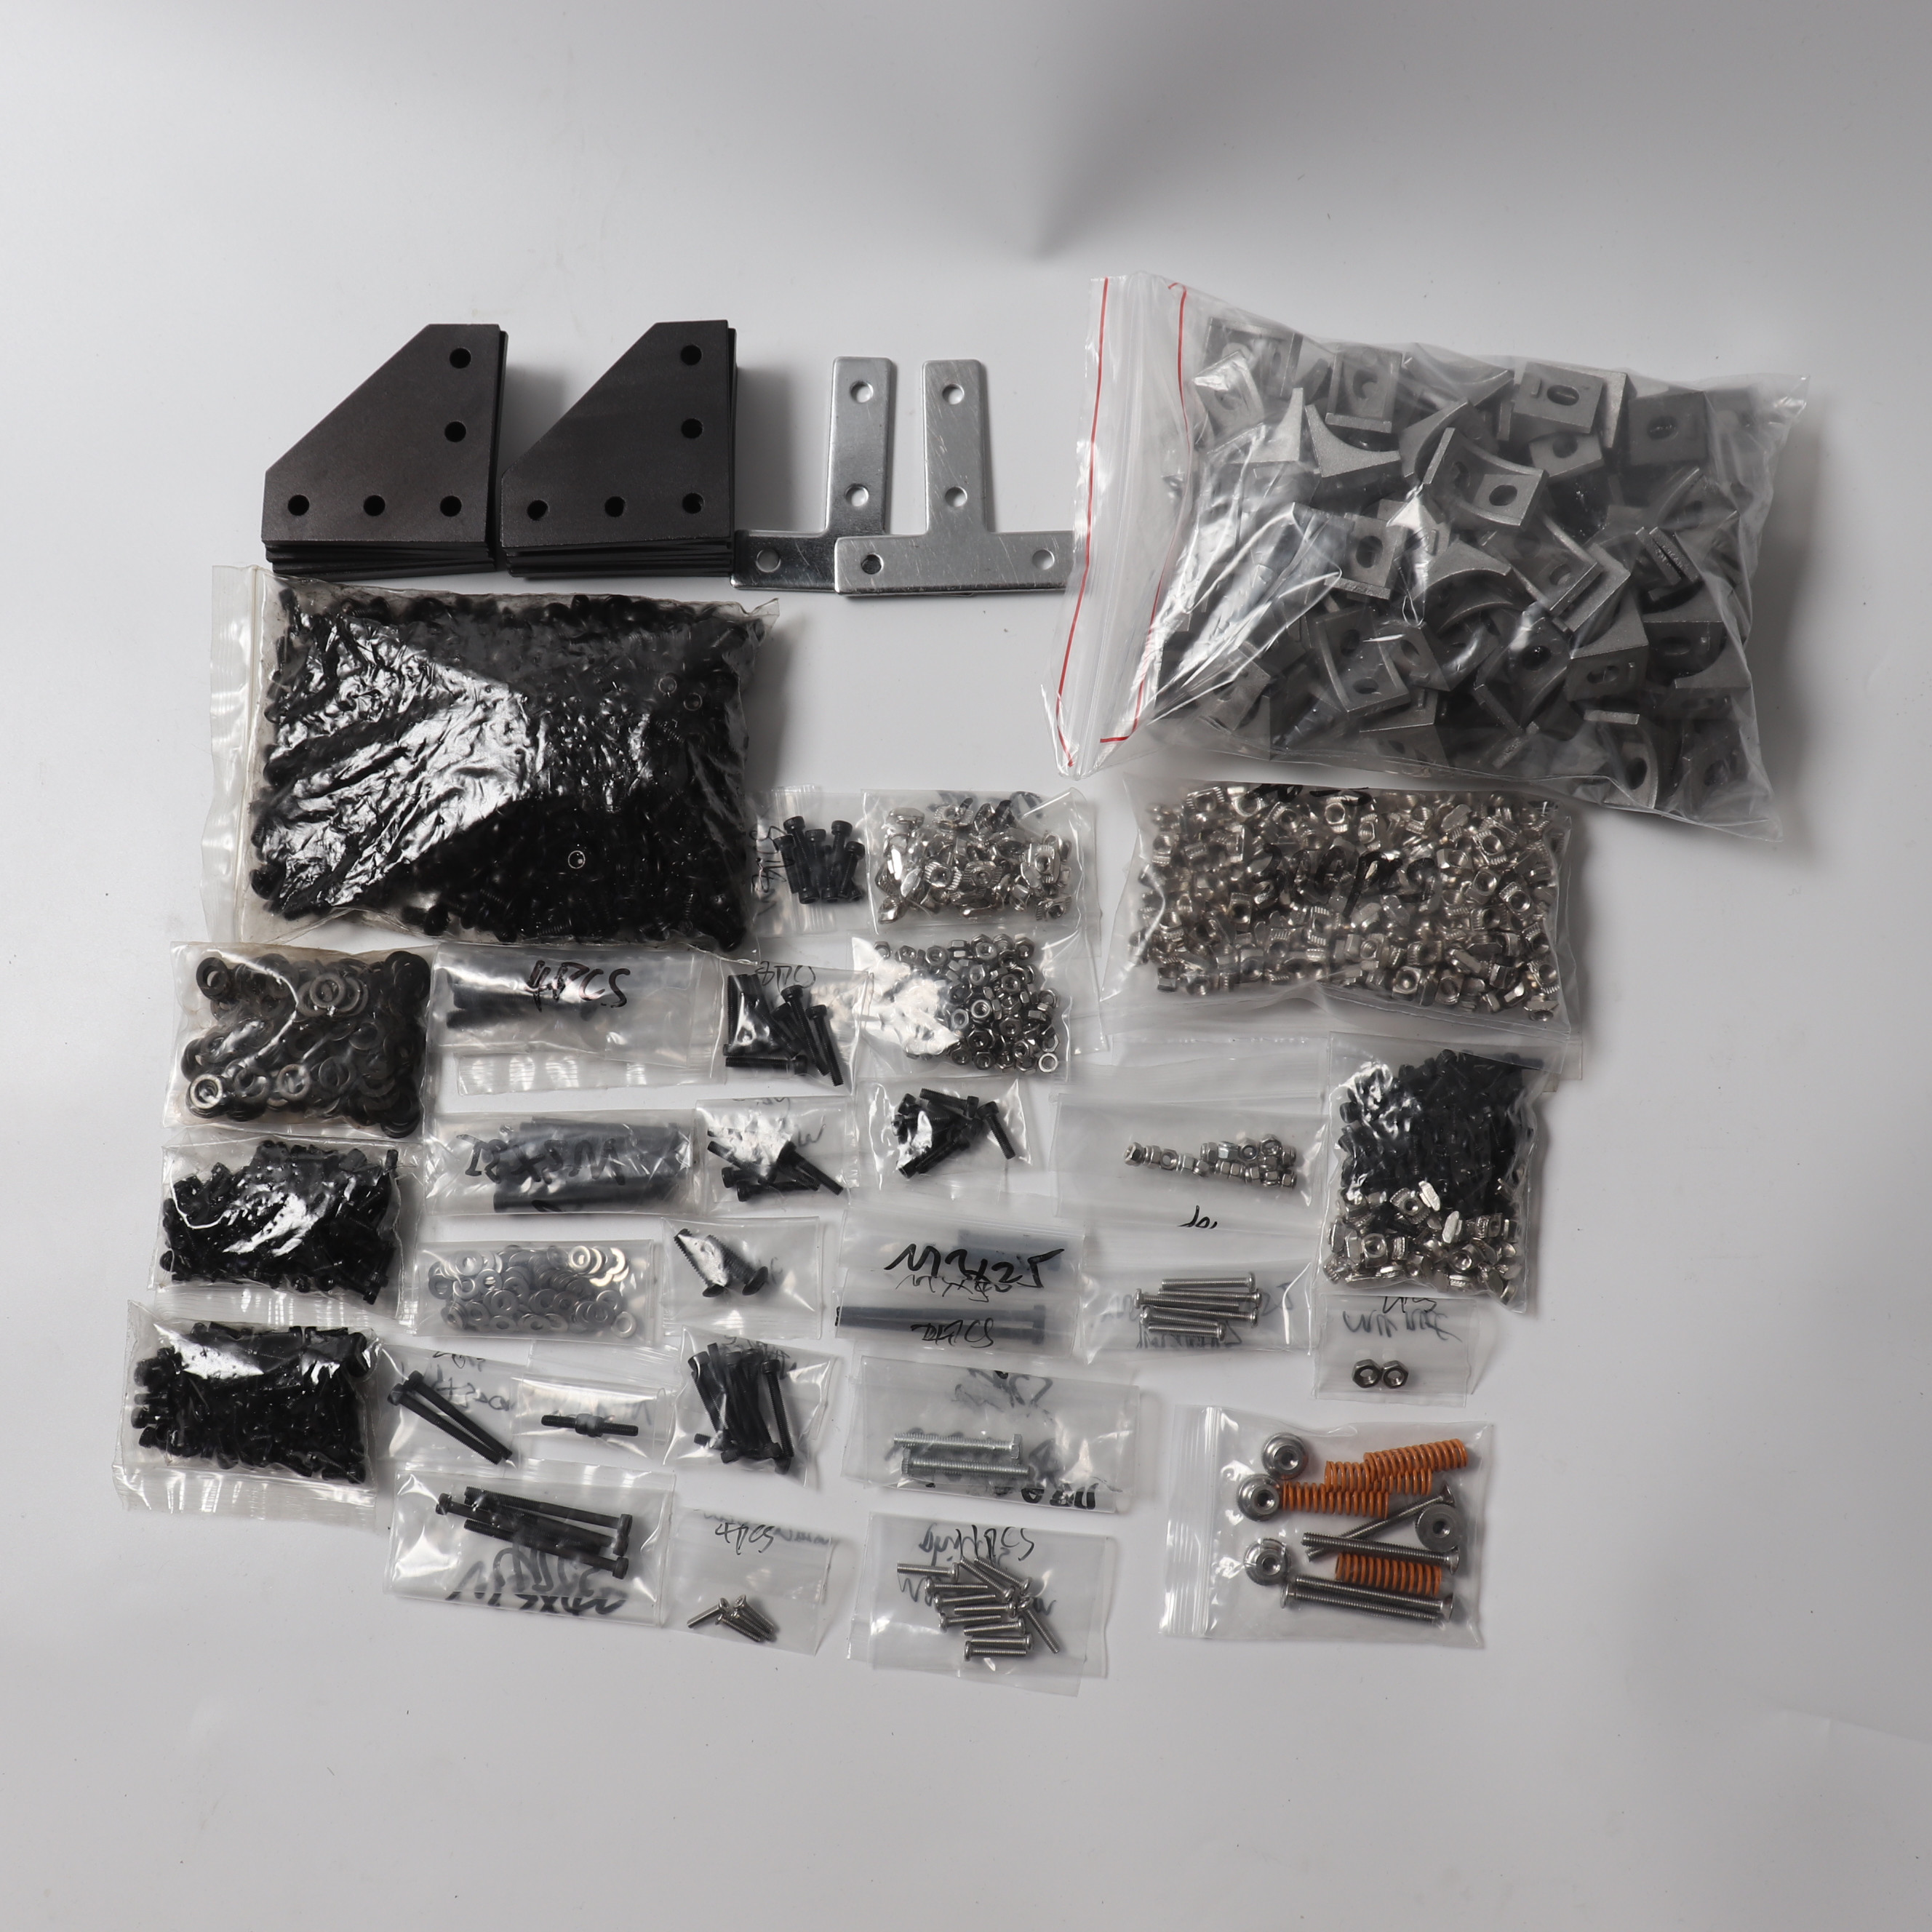 Blurolls Full Screws, Nuts, Bracket And Corners Kit For BLV MGN Cube 3d Printer